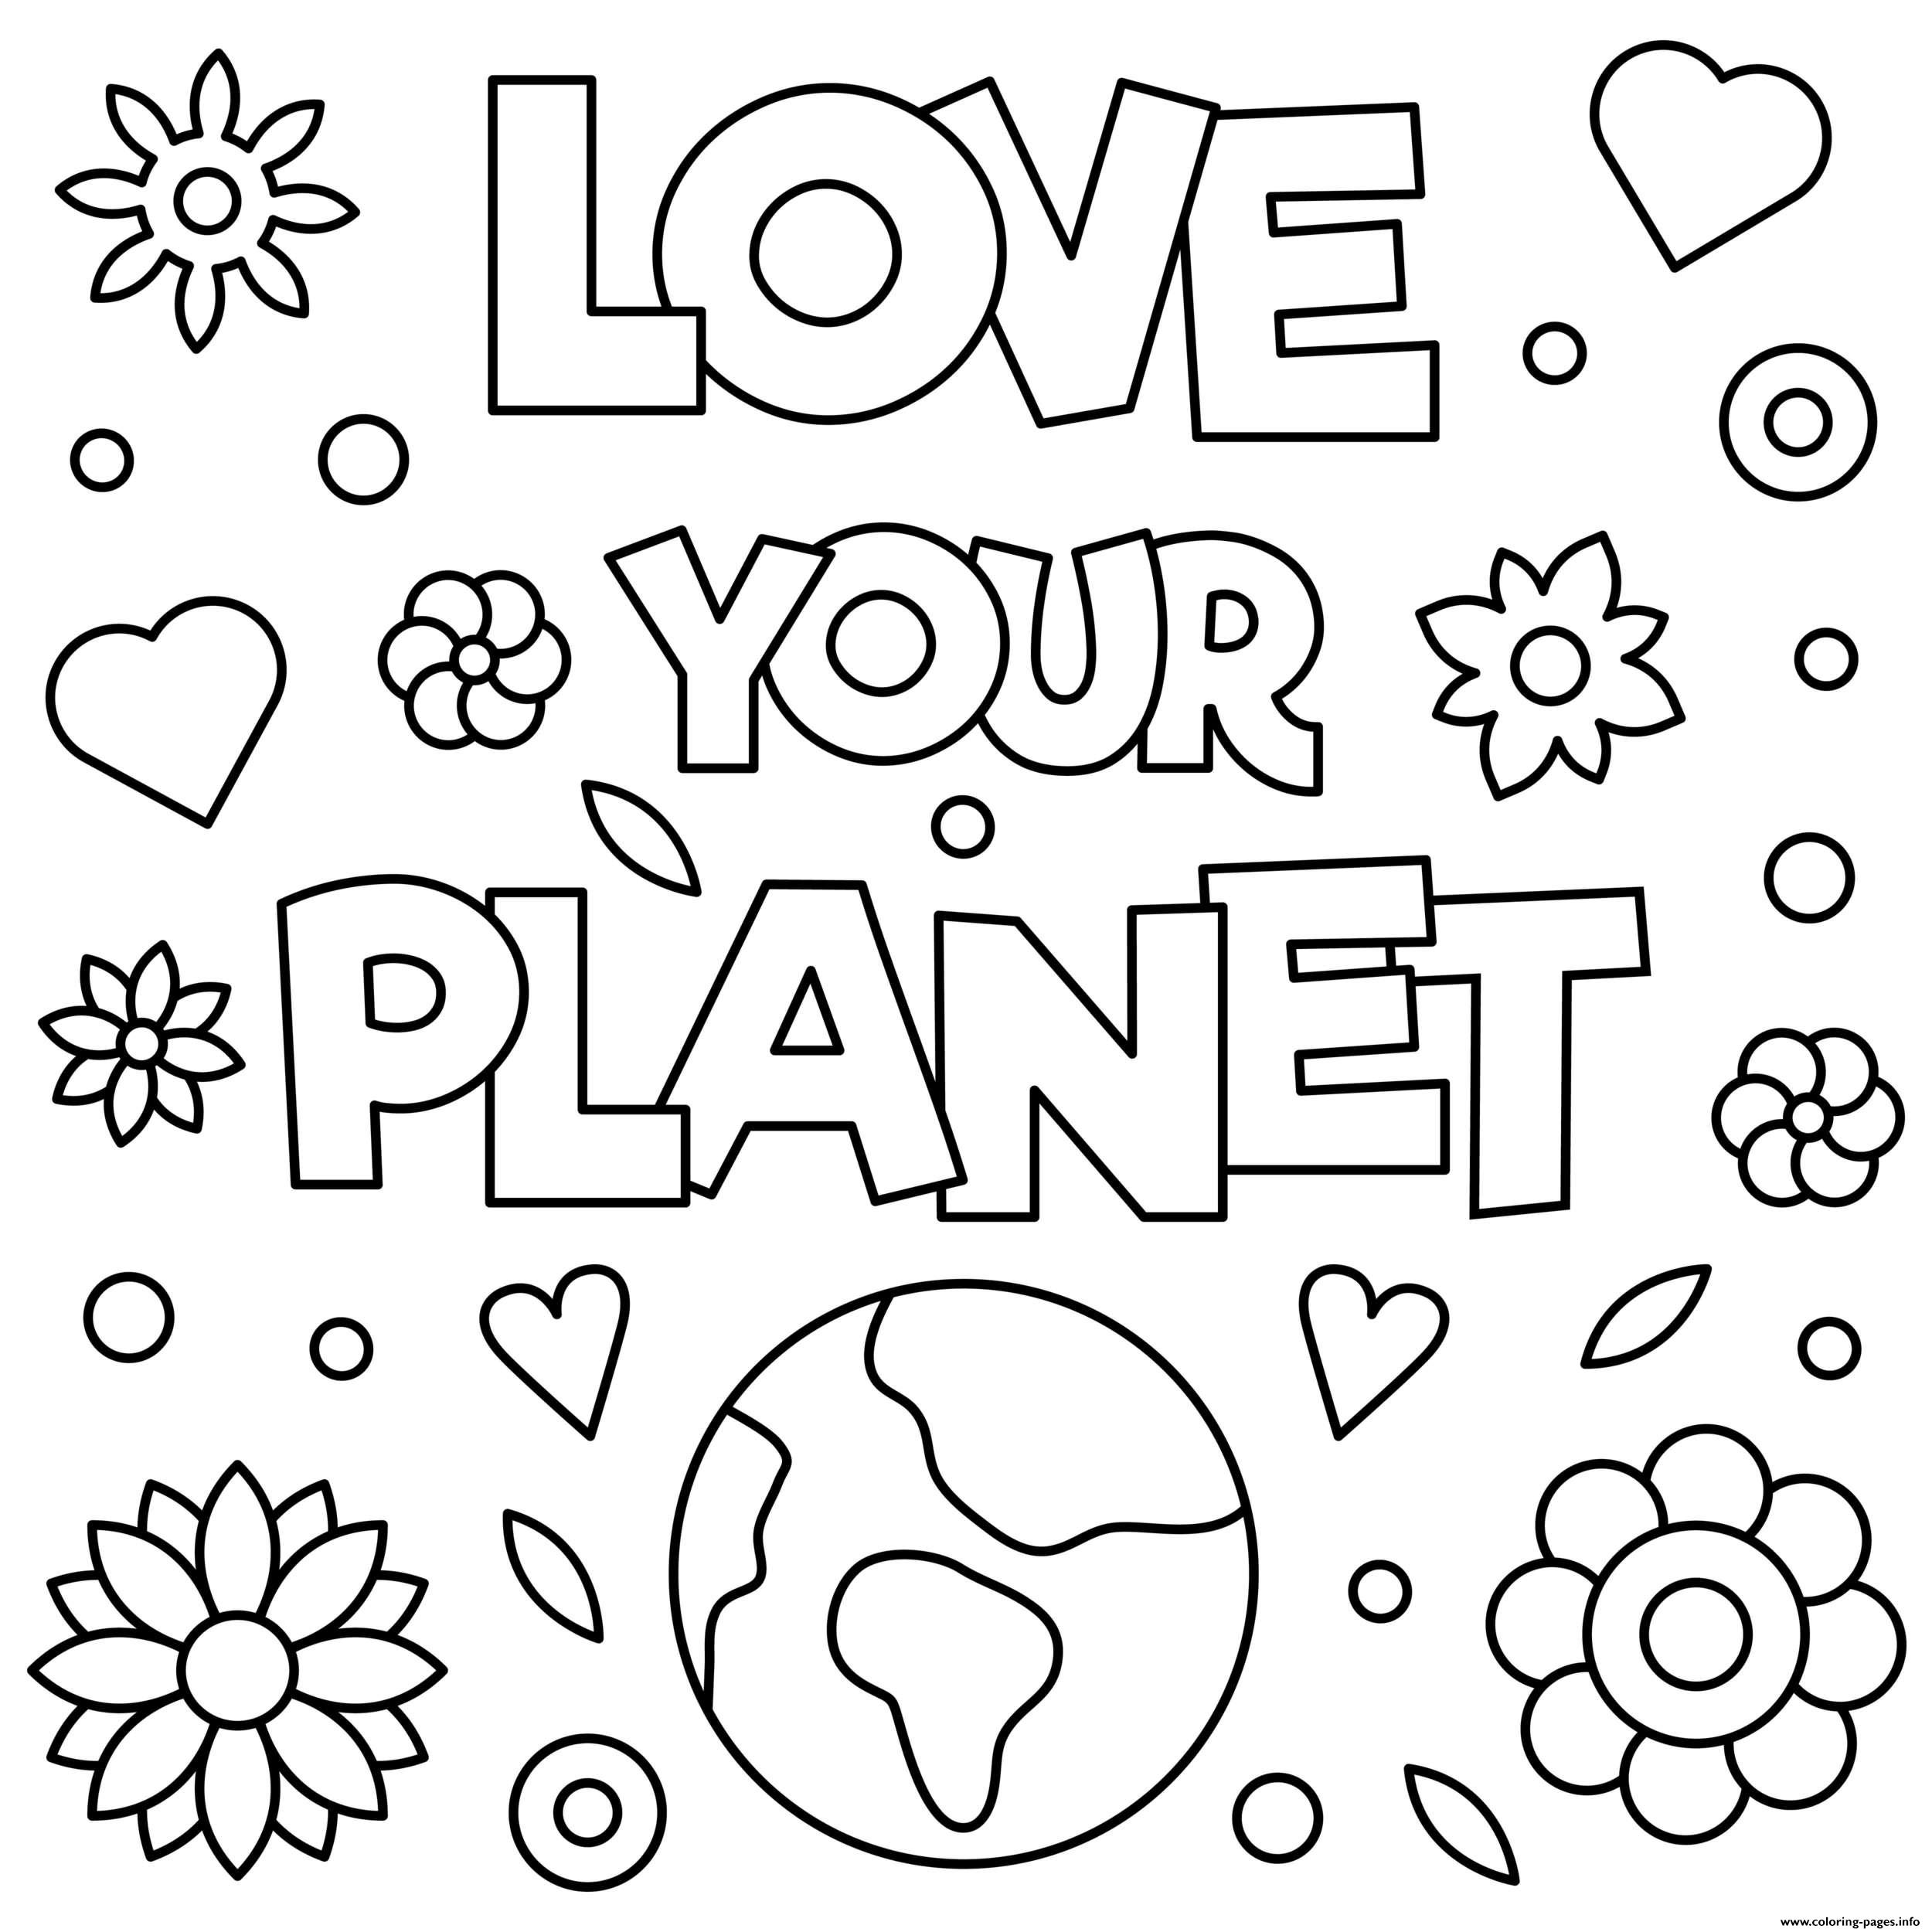 Love Your Planet Earth Day 22 April Coloring Pages Printable